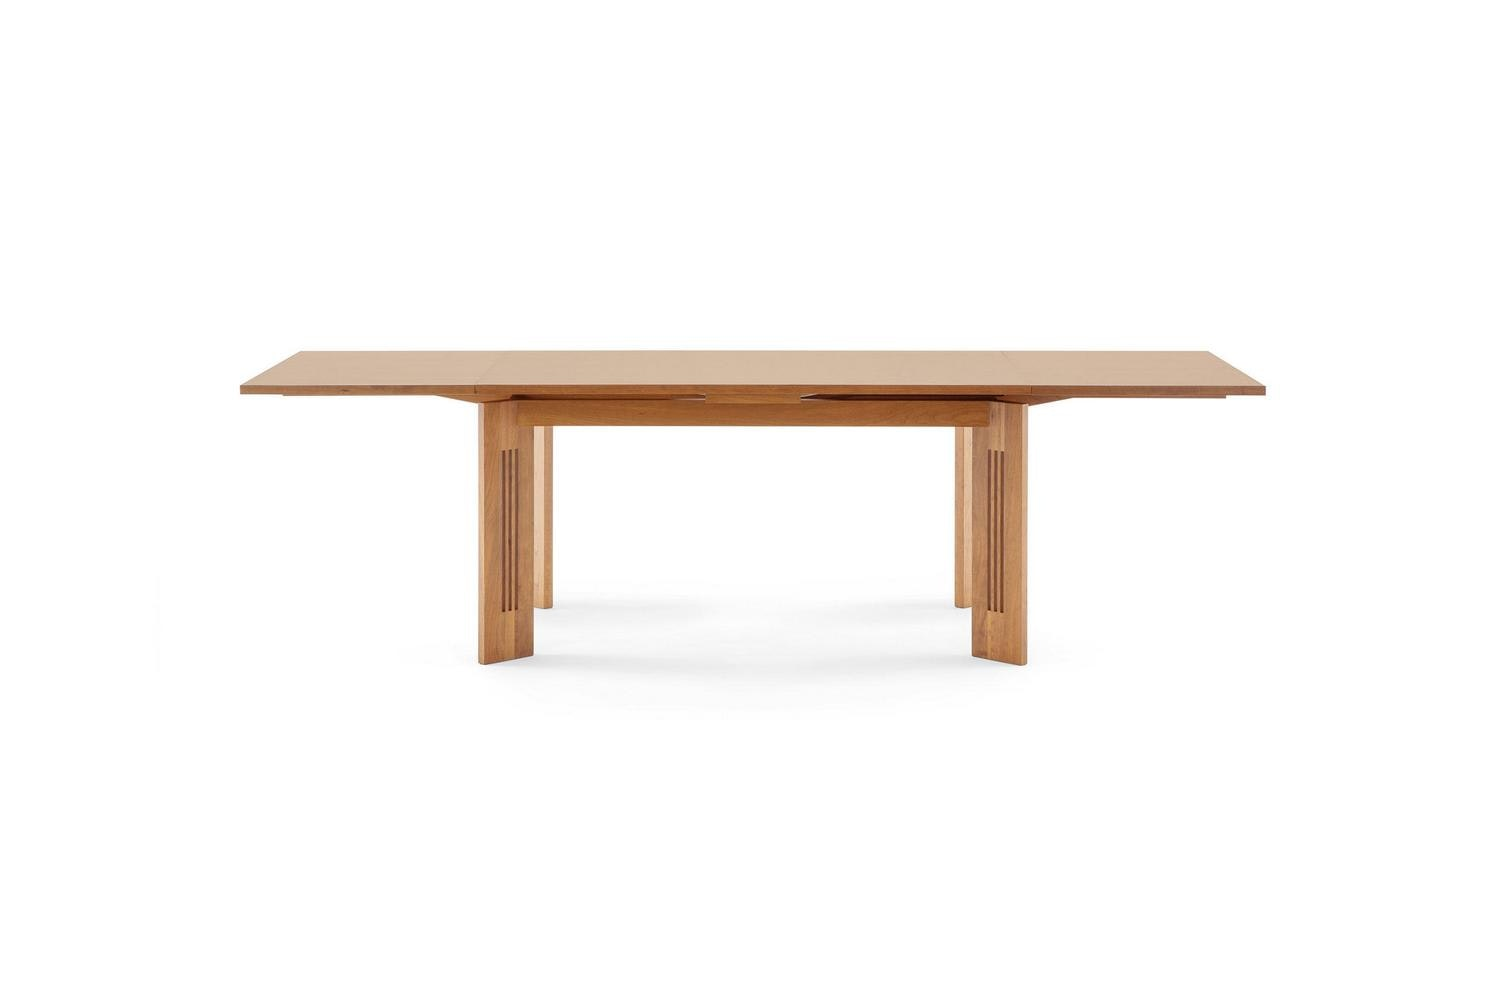 320 Berlino Table by Charles Rennie Mackintosh for Cassina